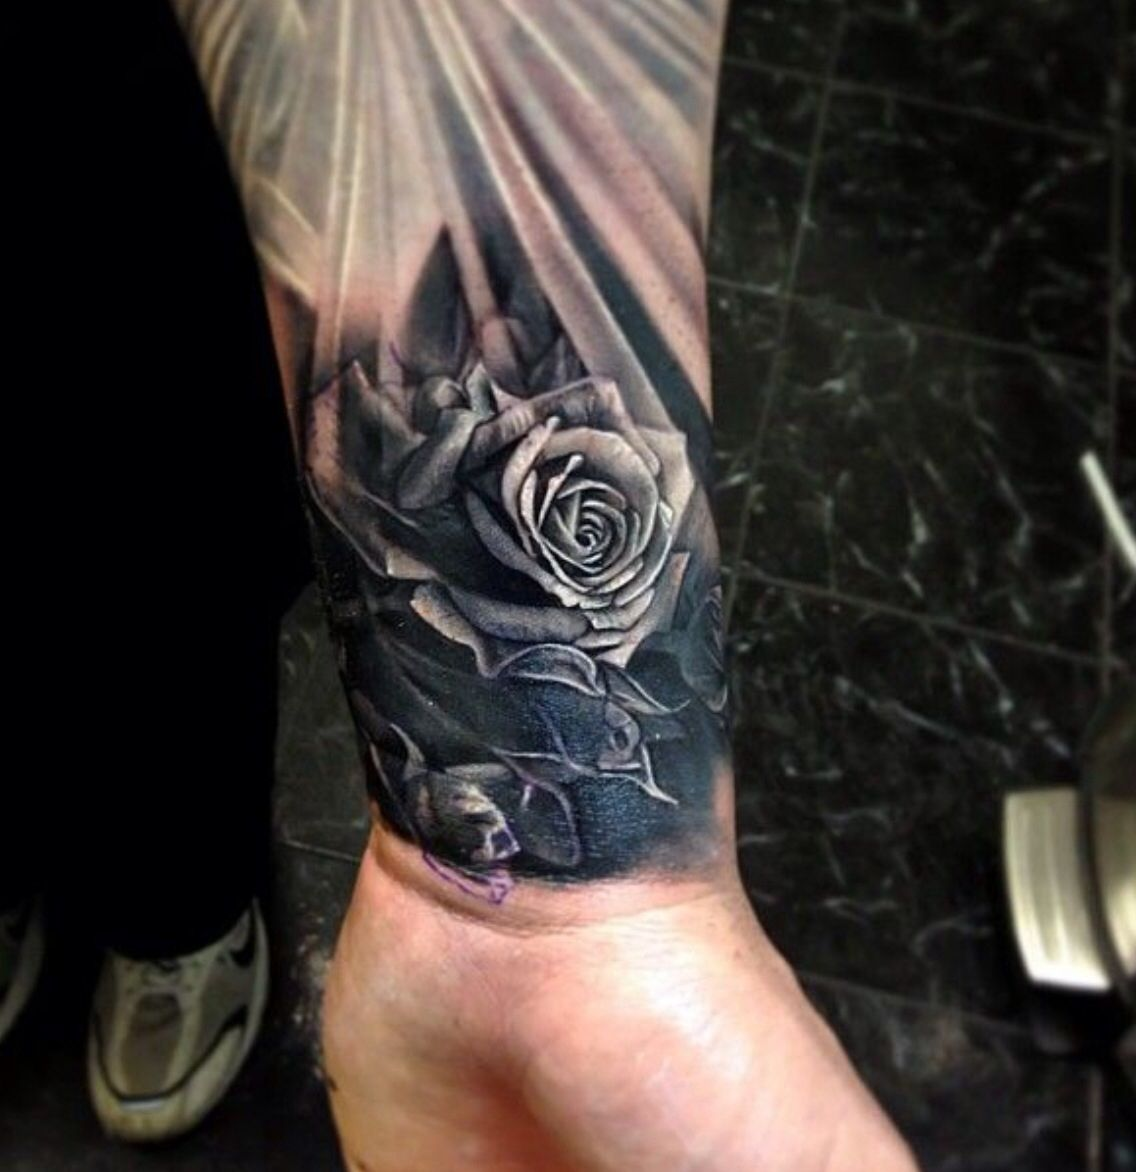 Realistic Men S Wrist Tattoo Idea Of Rose Wrist Tattoos For Guys Rose Tattoos For Men Quarter Sleeve Tattoos